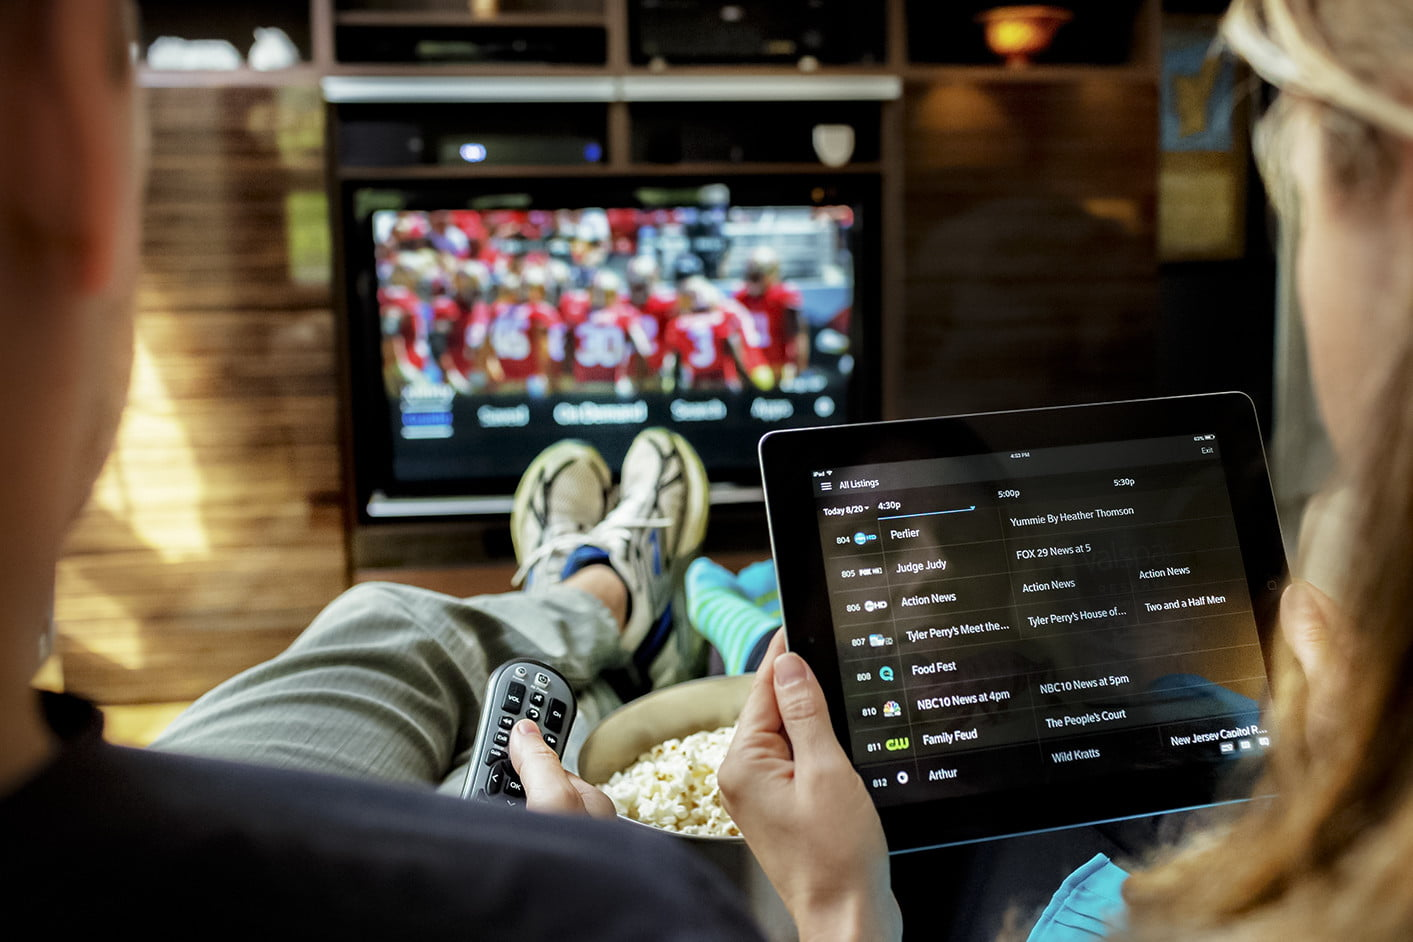 Comcast Xfinity TV: Everything You Need to Know | Page 3 | Digital